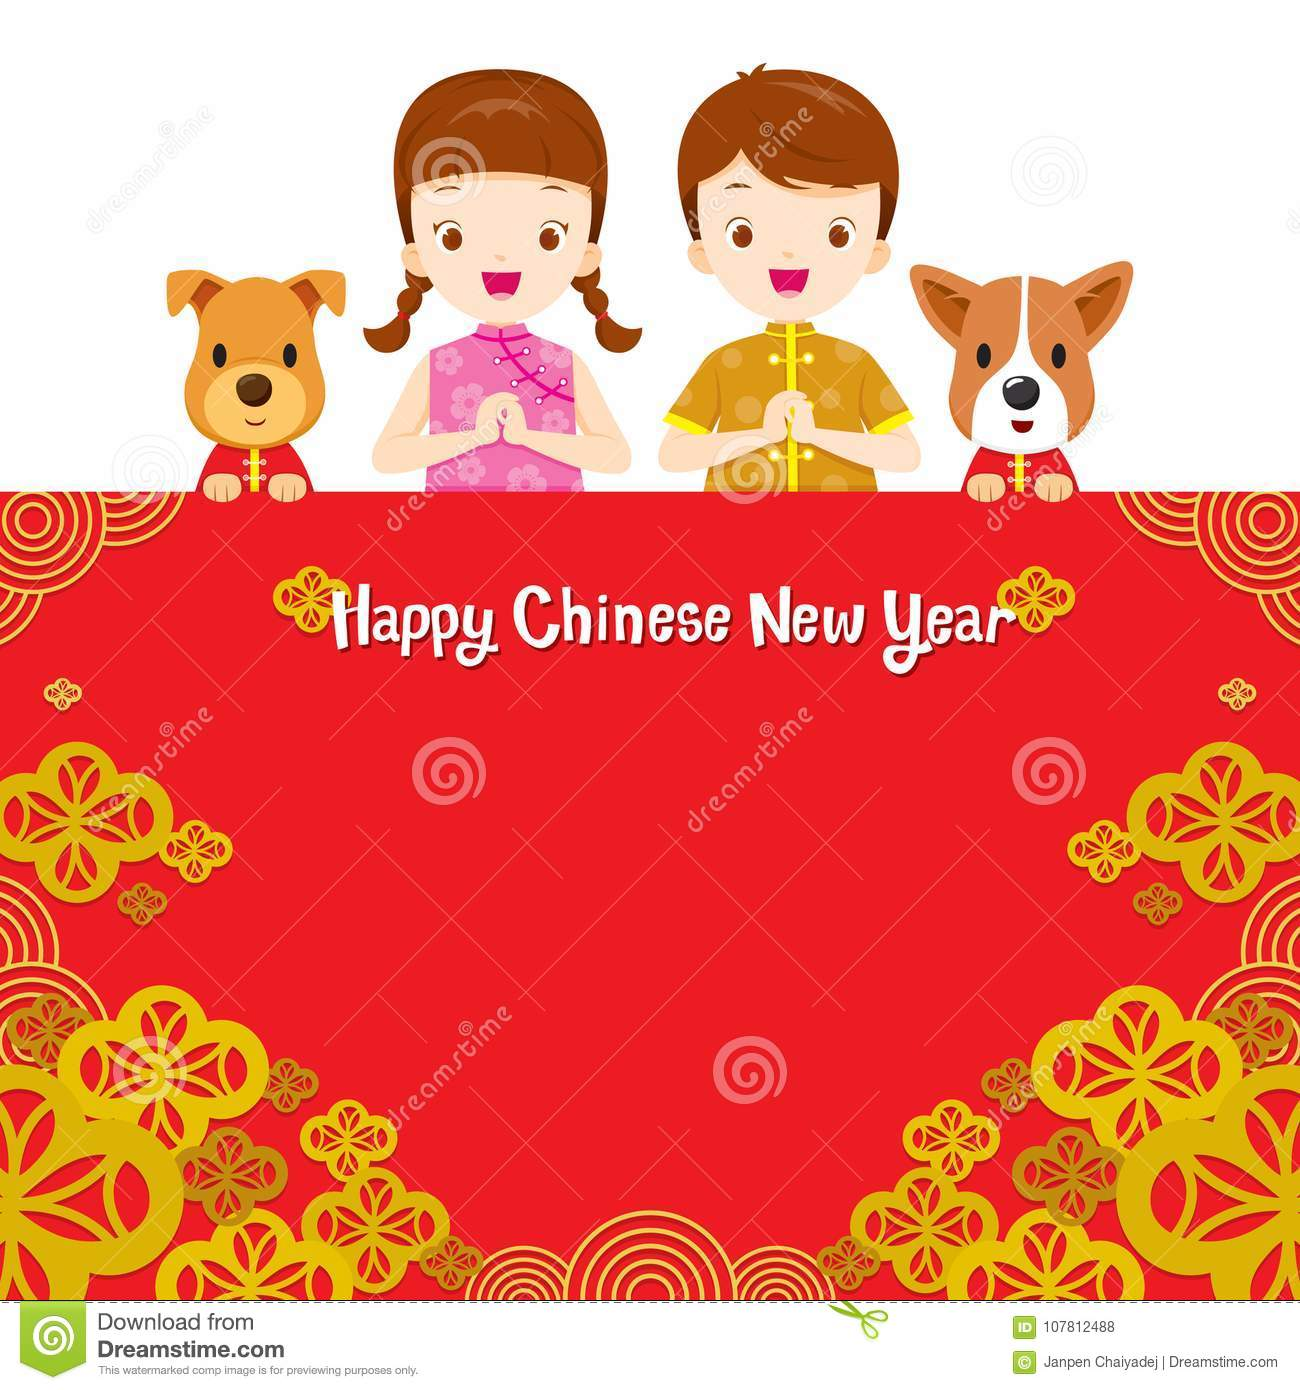 happy chinese new year border with children